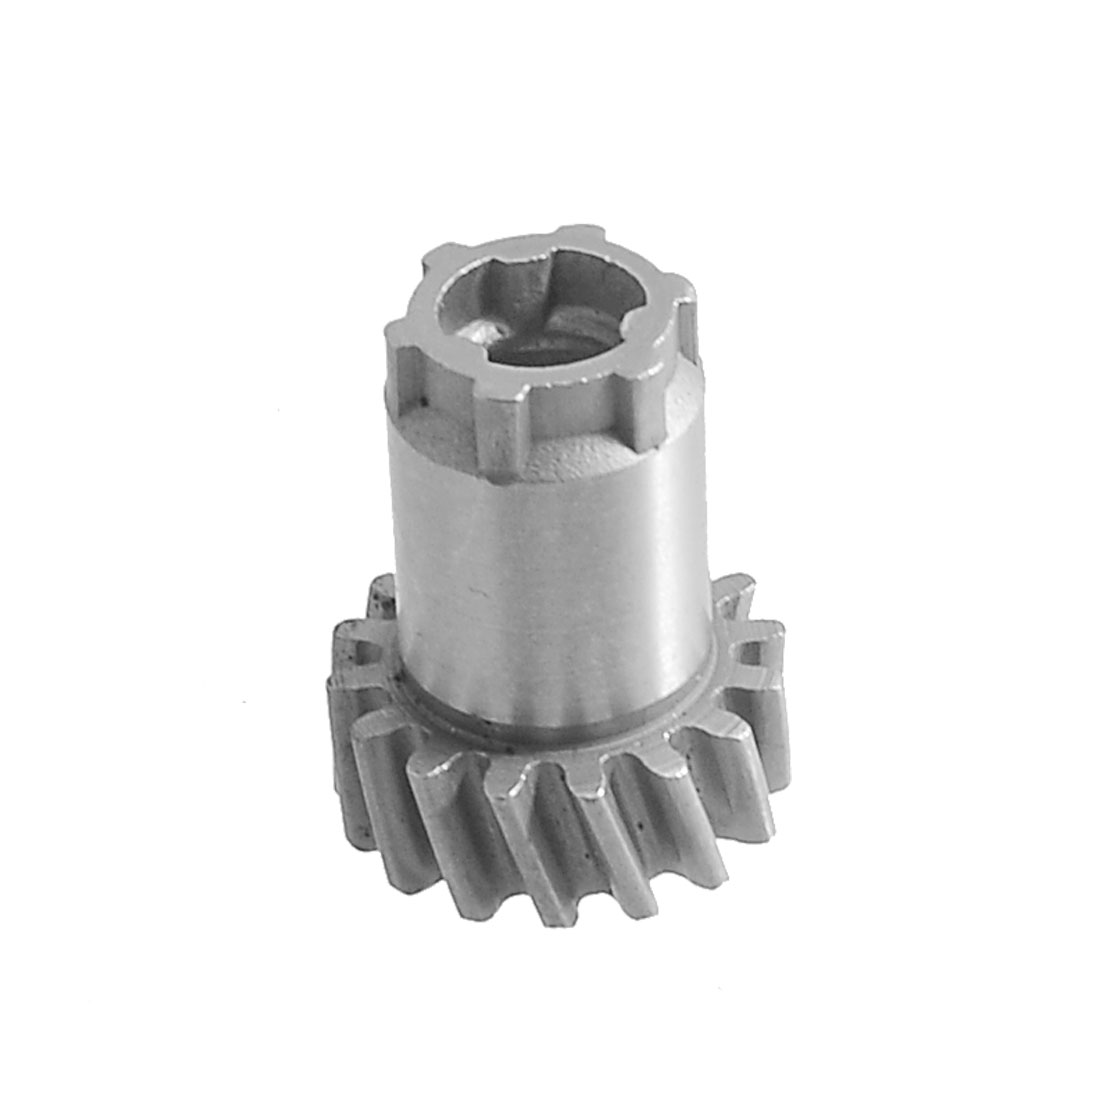 Power Tool Part 16 Teeth Gear for Bosch 24 Electric Hammer